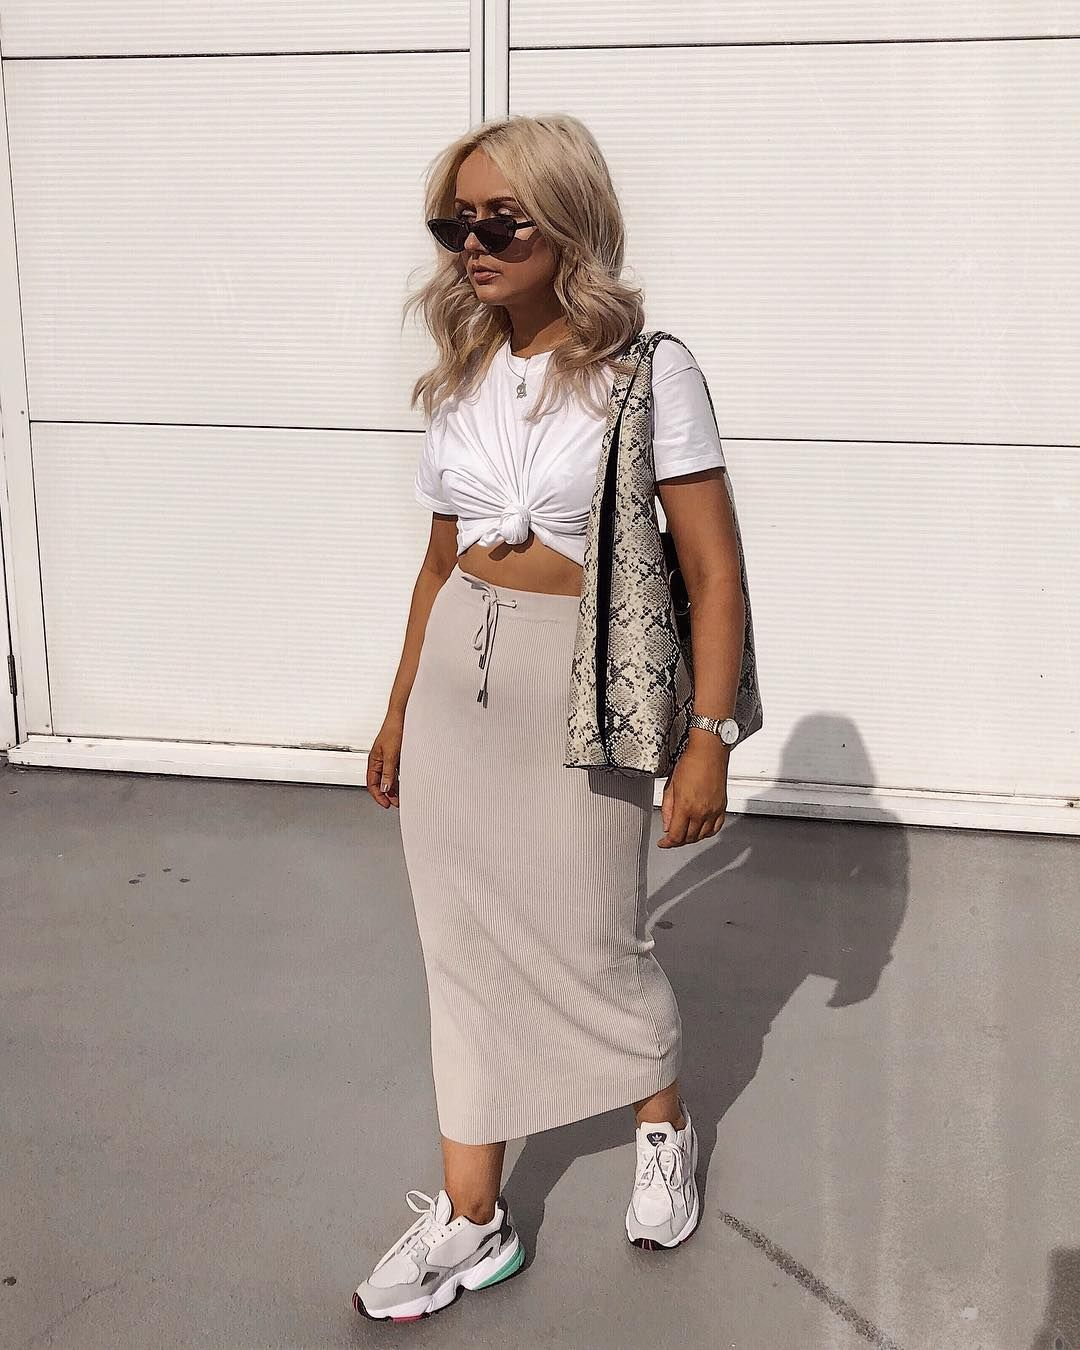 long skirt with trainers